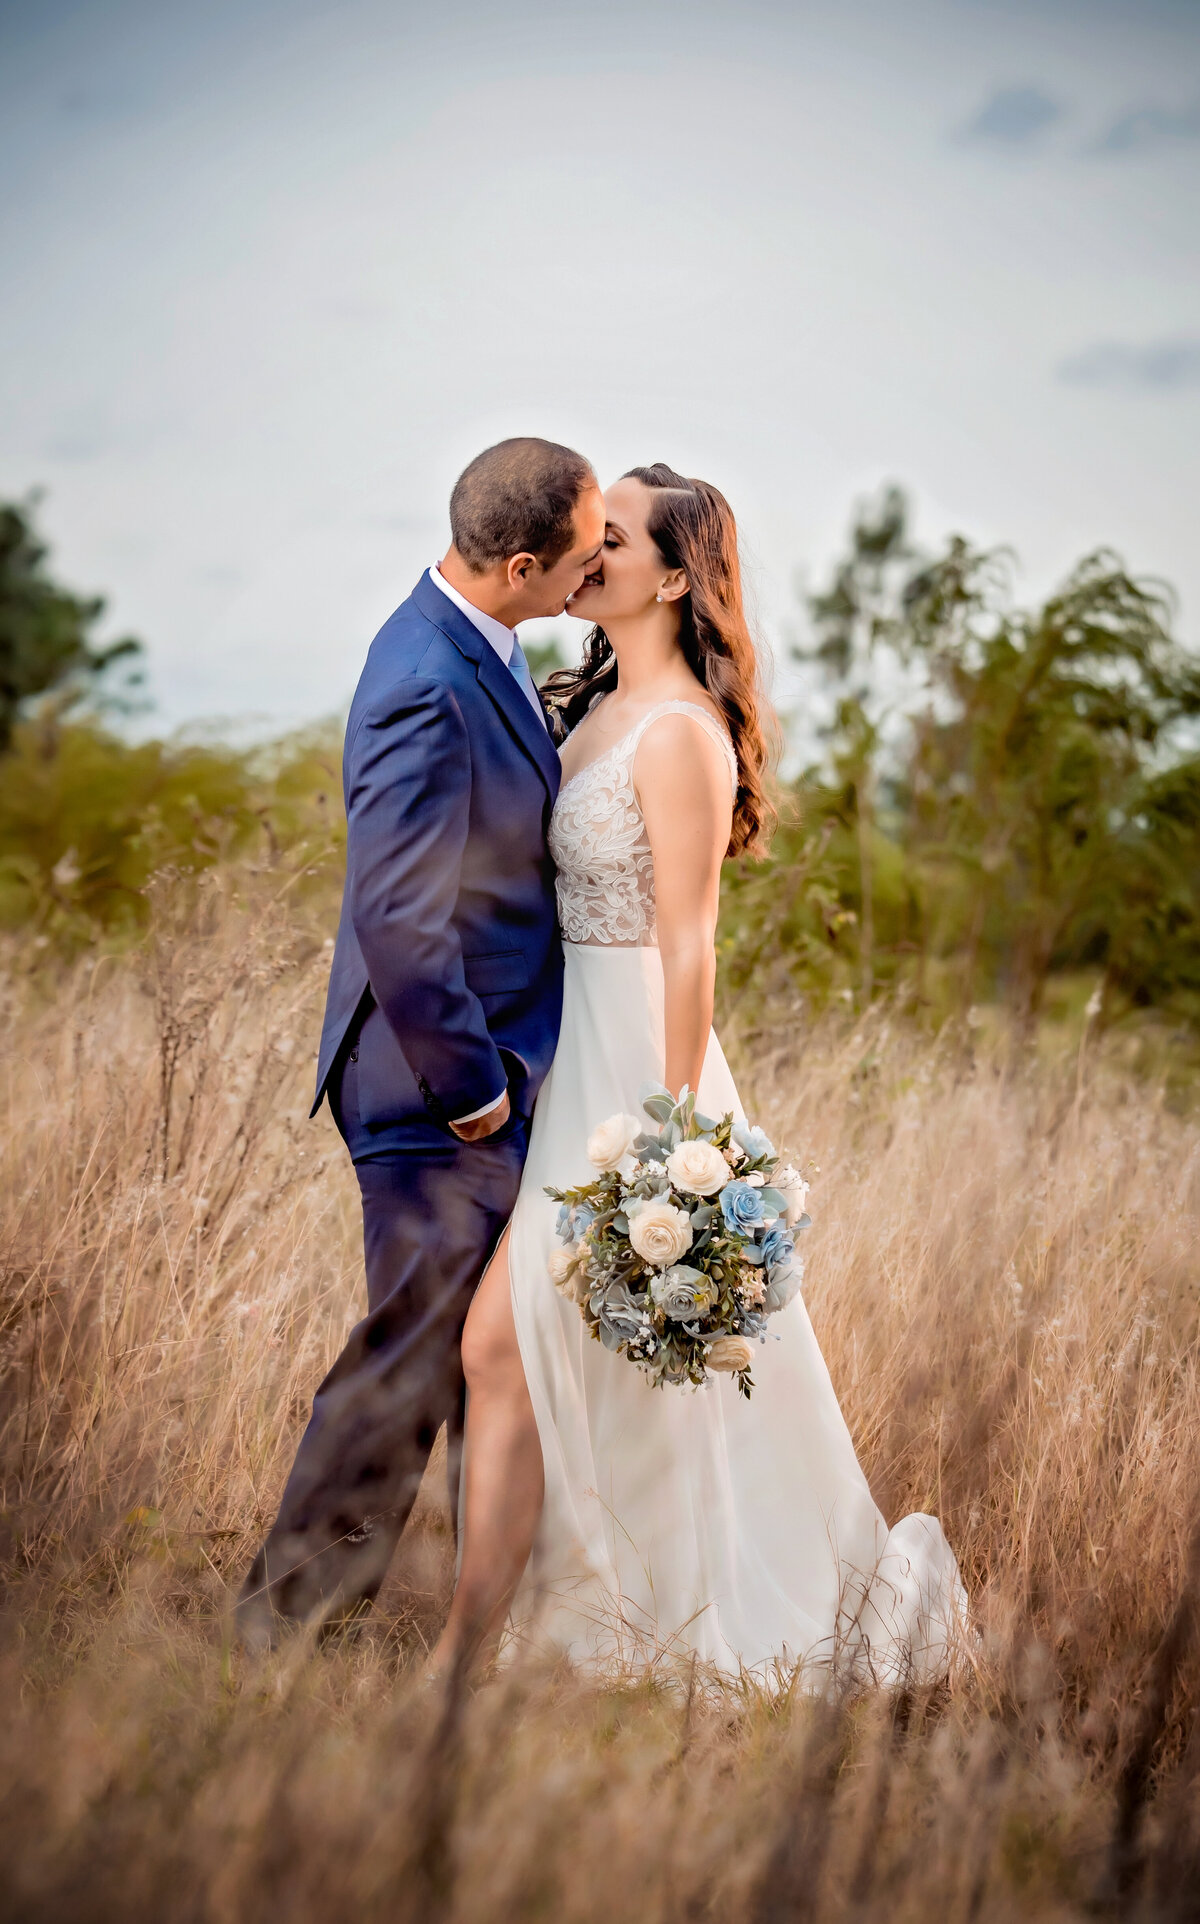 SH-Wedding-Photographerfavorite-87